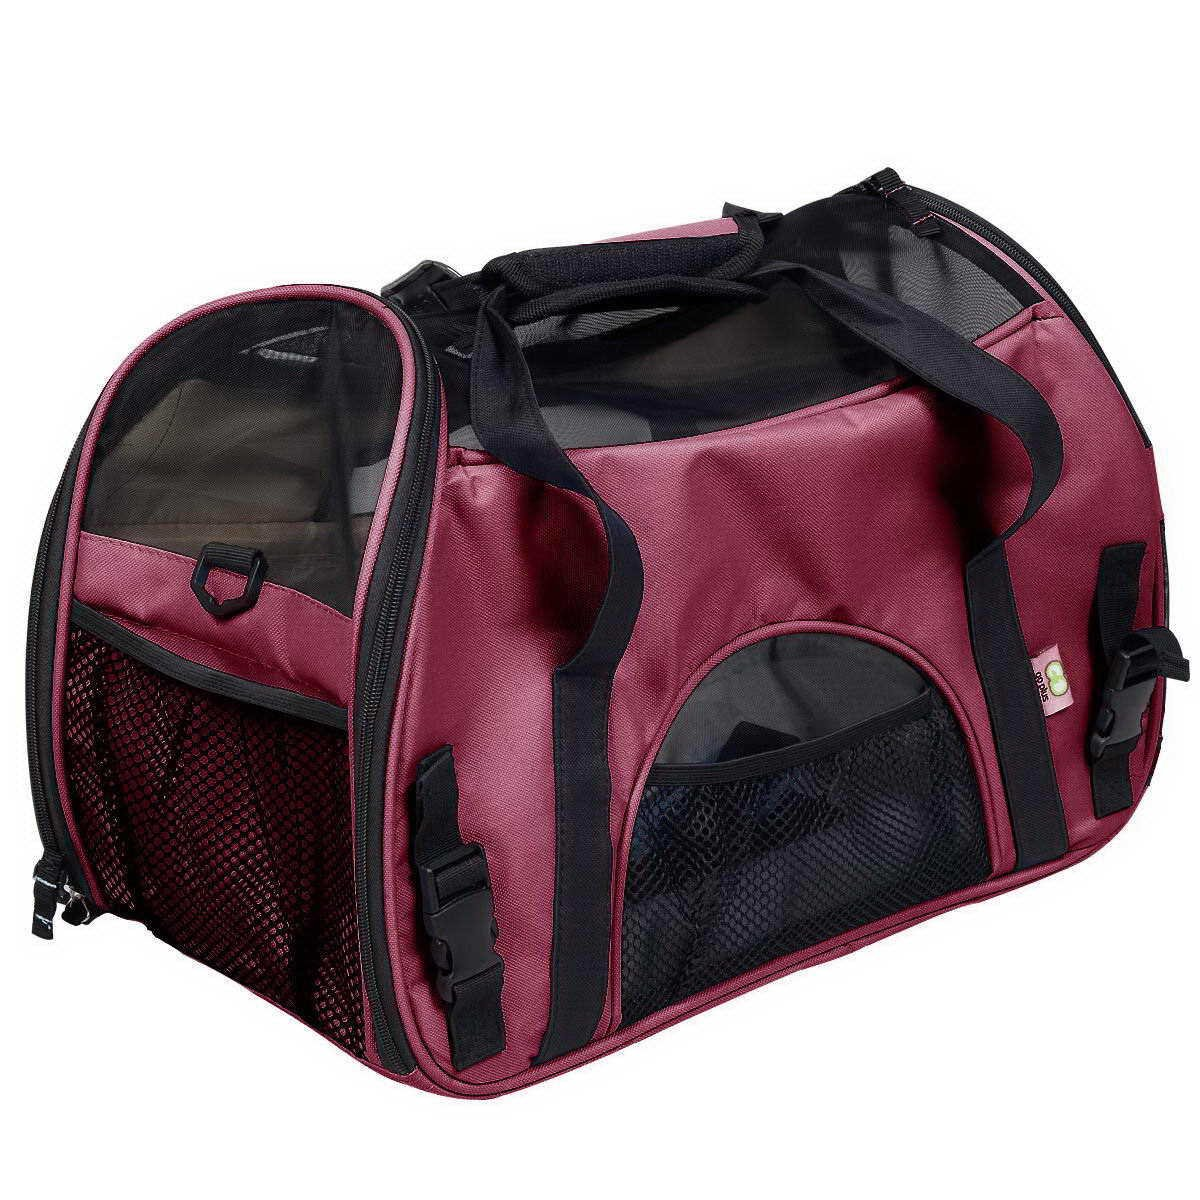 Red LargePet Carrier Soft Sided Pets Cat Carriers, Collapsible Portable Travel Dog Airplane Carrier for Small and Medium Cats Dogs Puppies (Up to 15lbs),bluee,M